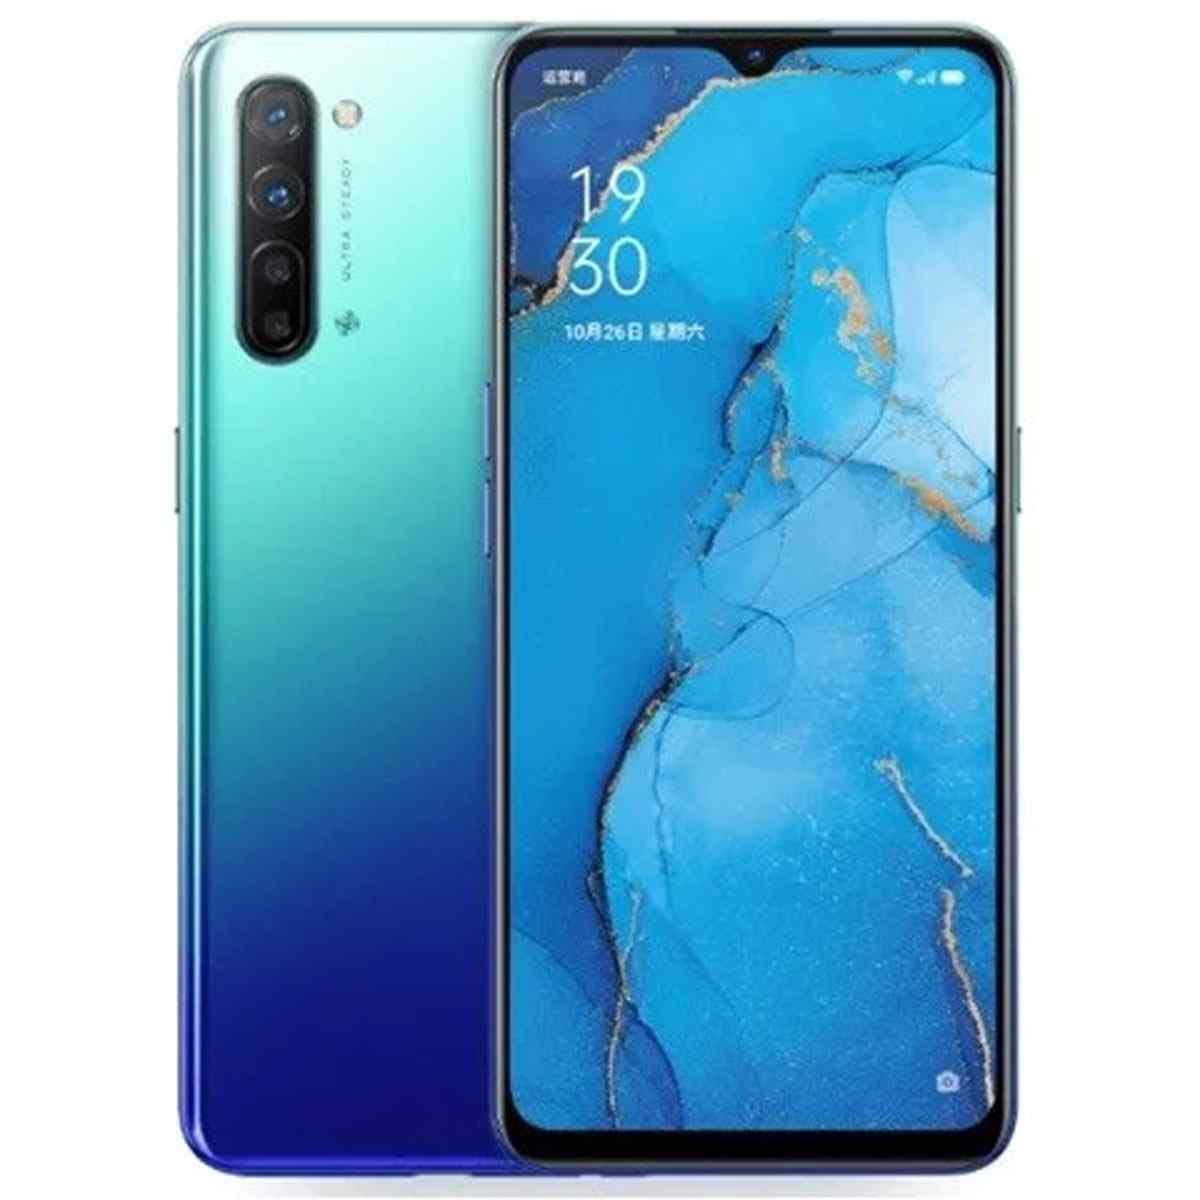 Oppo Reno 3 Dual Sim With Official Warranty